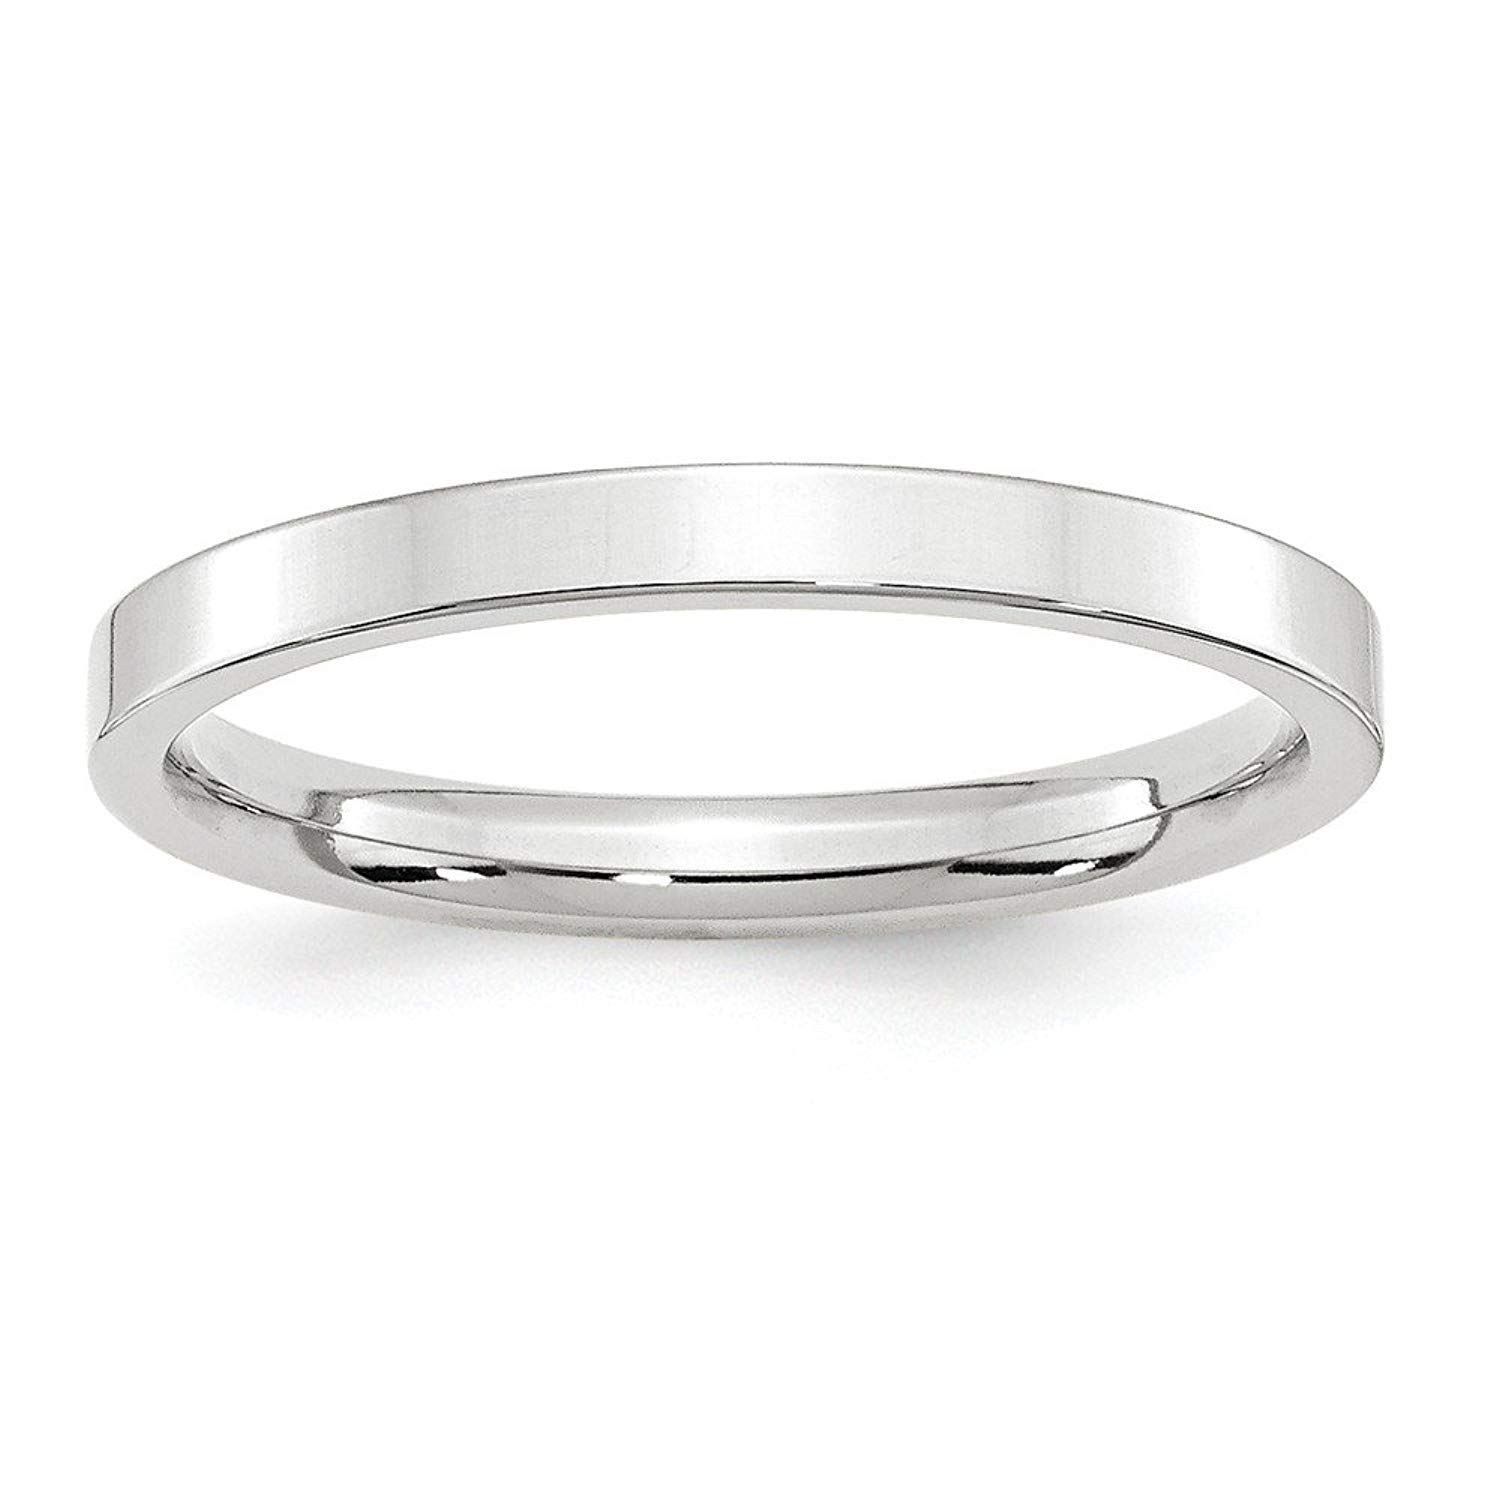 Jewelry Best Seller 14KW 2.5mm Standard Flat Comfort Fit Band Size 8